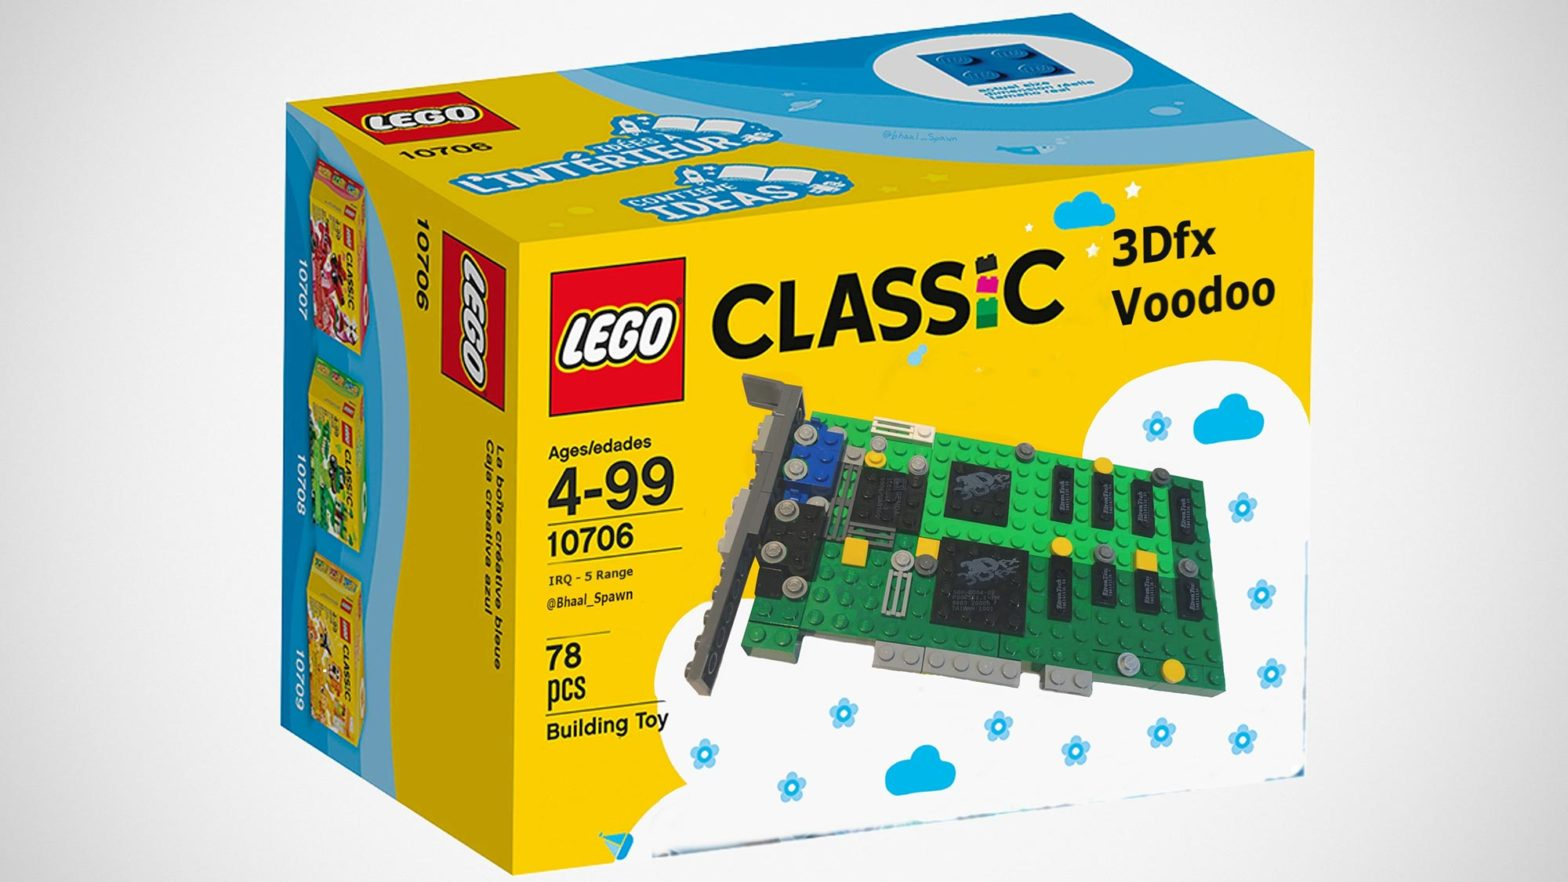 LEGO 3dfx Interactive Voodoo 3D Graphics Card